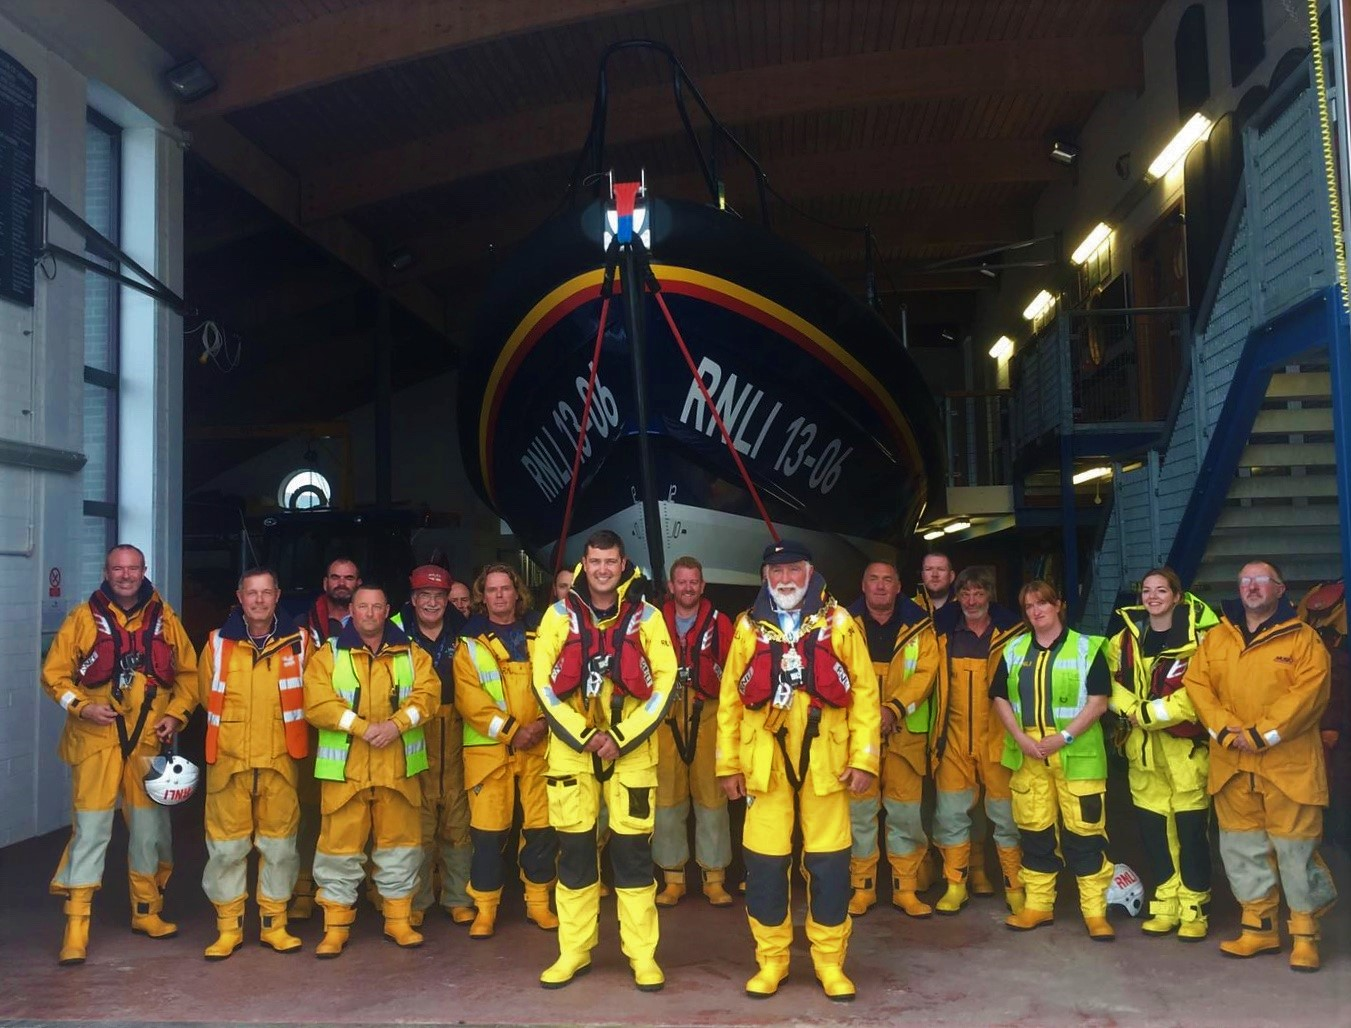 Councillor Geoffrey Watt, dressed in yellow RNLI all-weather gear and wearing his civic chain of office, stands with the Hoylake Lifeboat crew in front of the Shannon class lifeboat